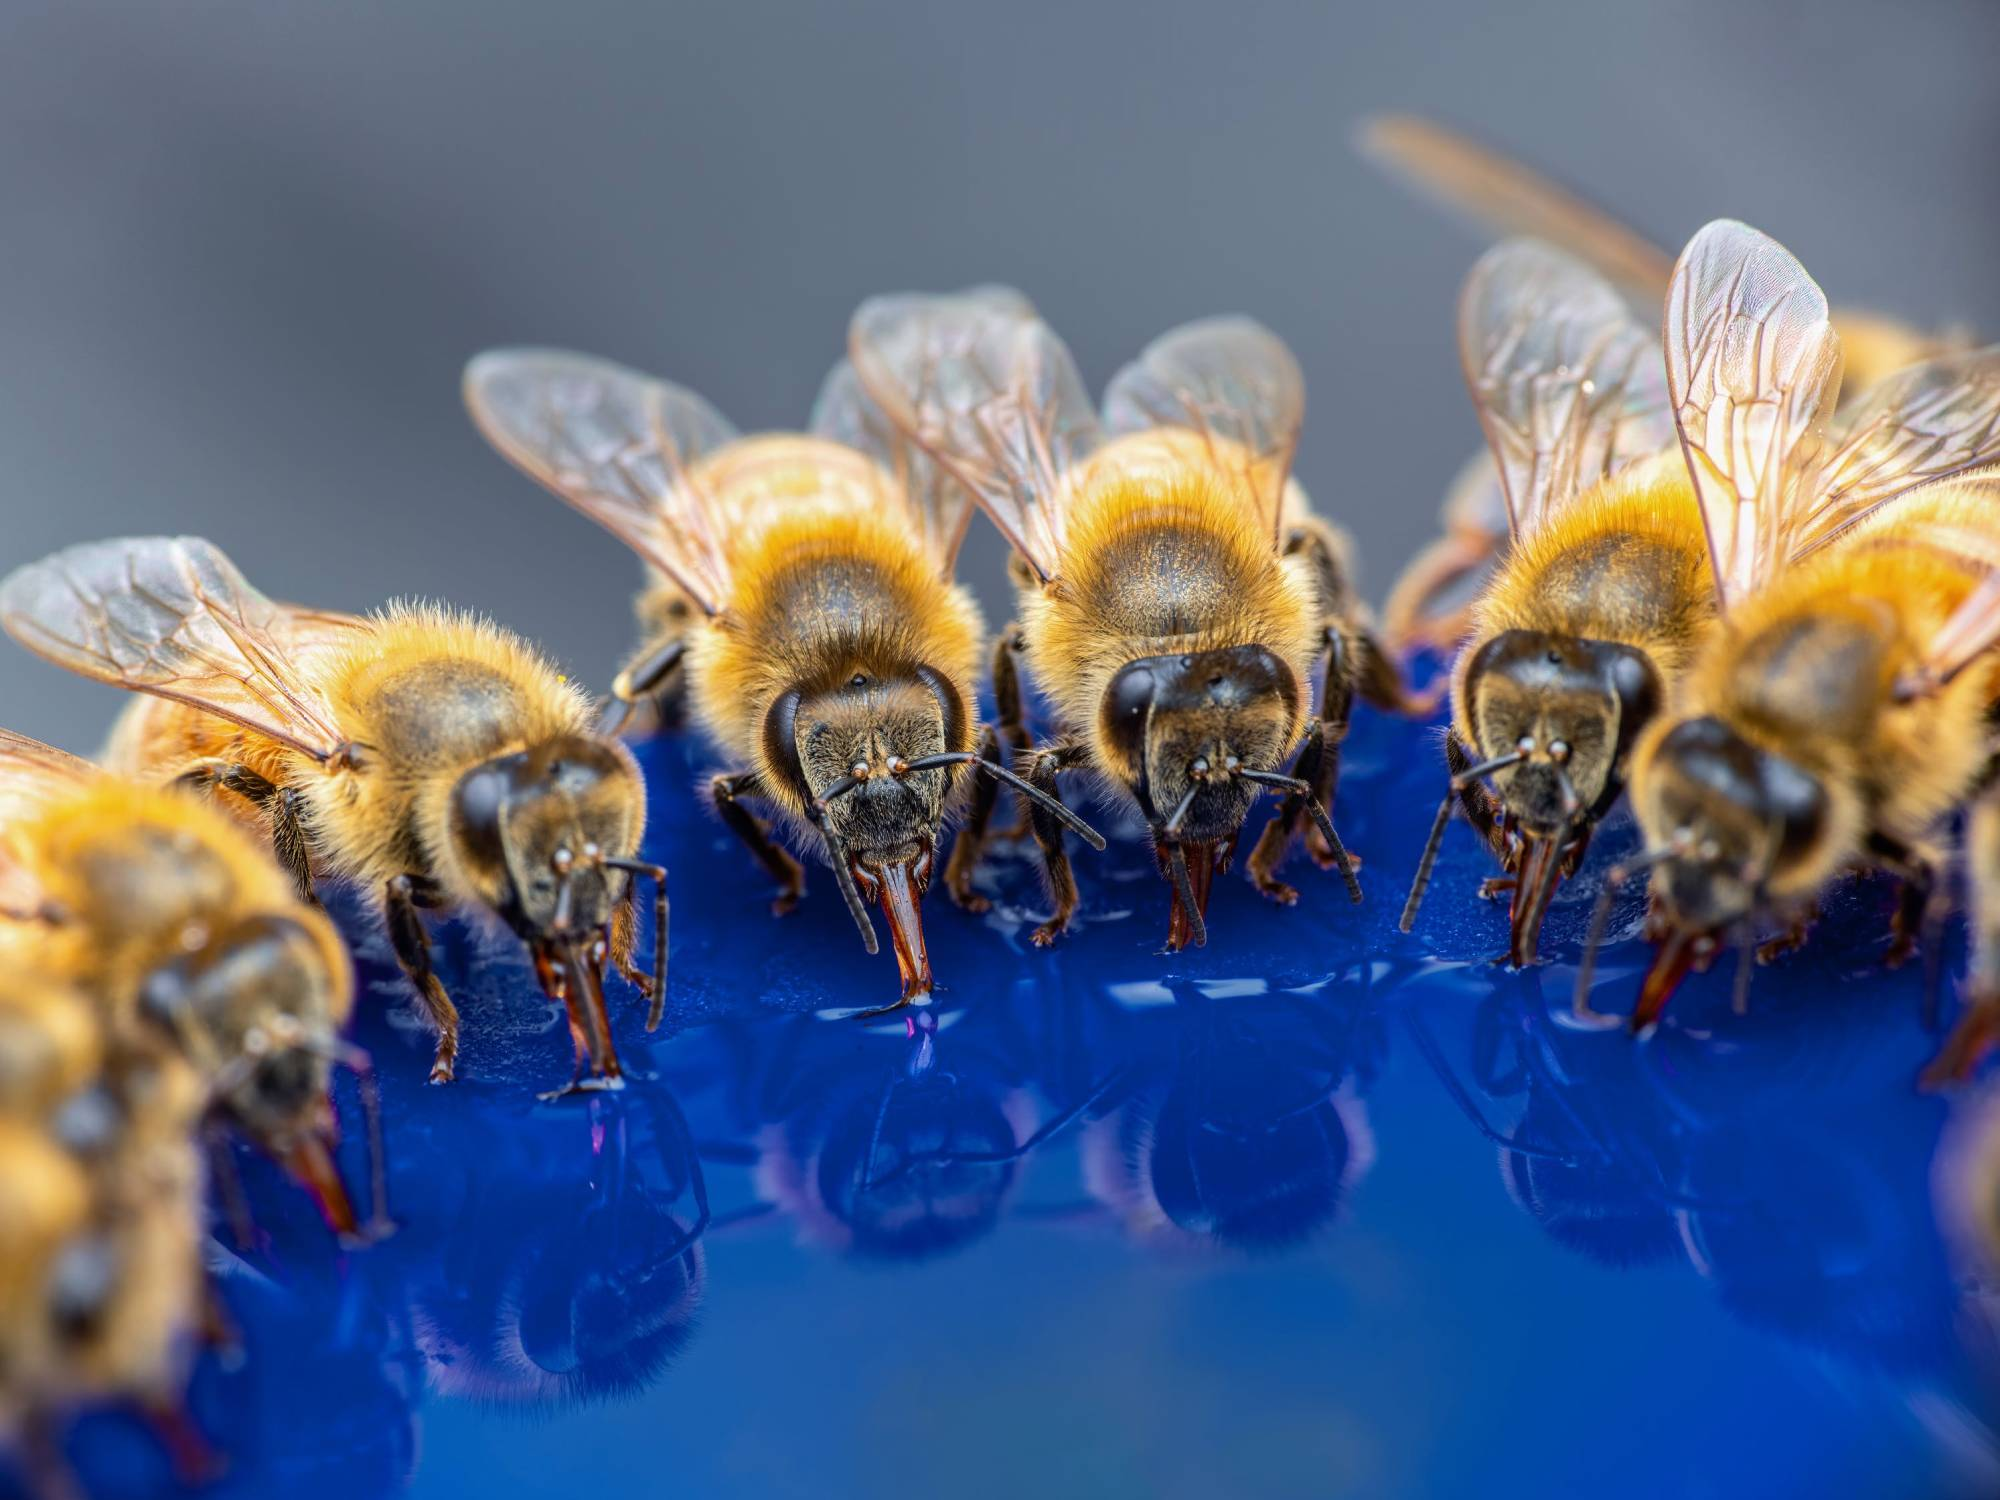 bees-drinking-nectar-from-feeder